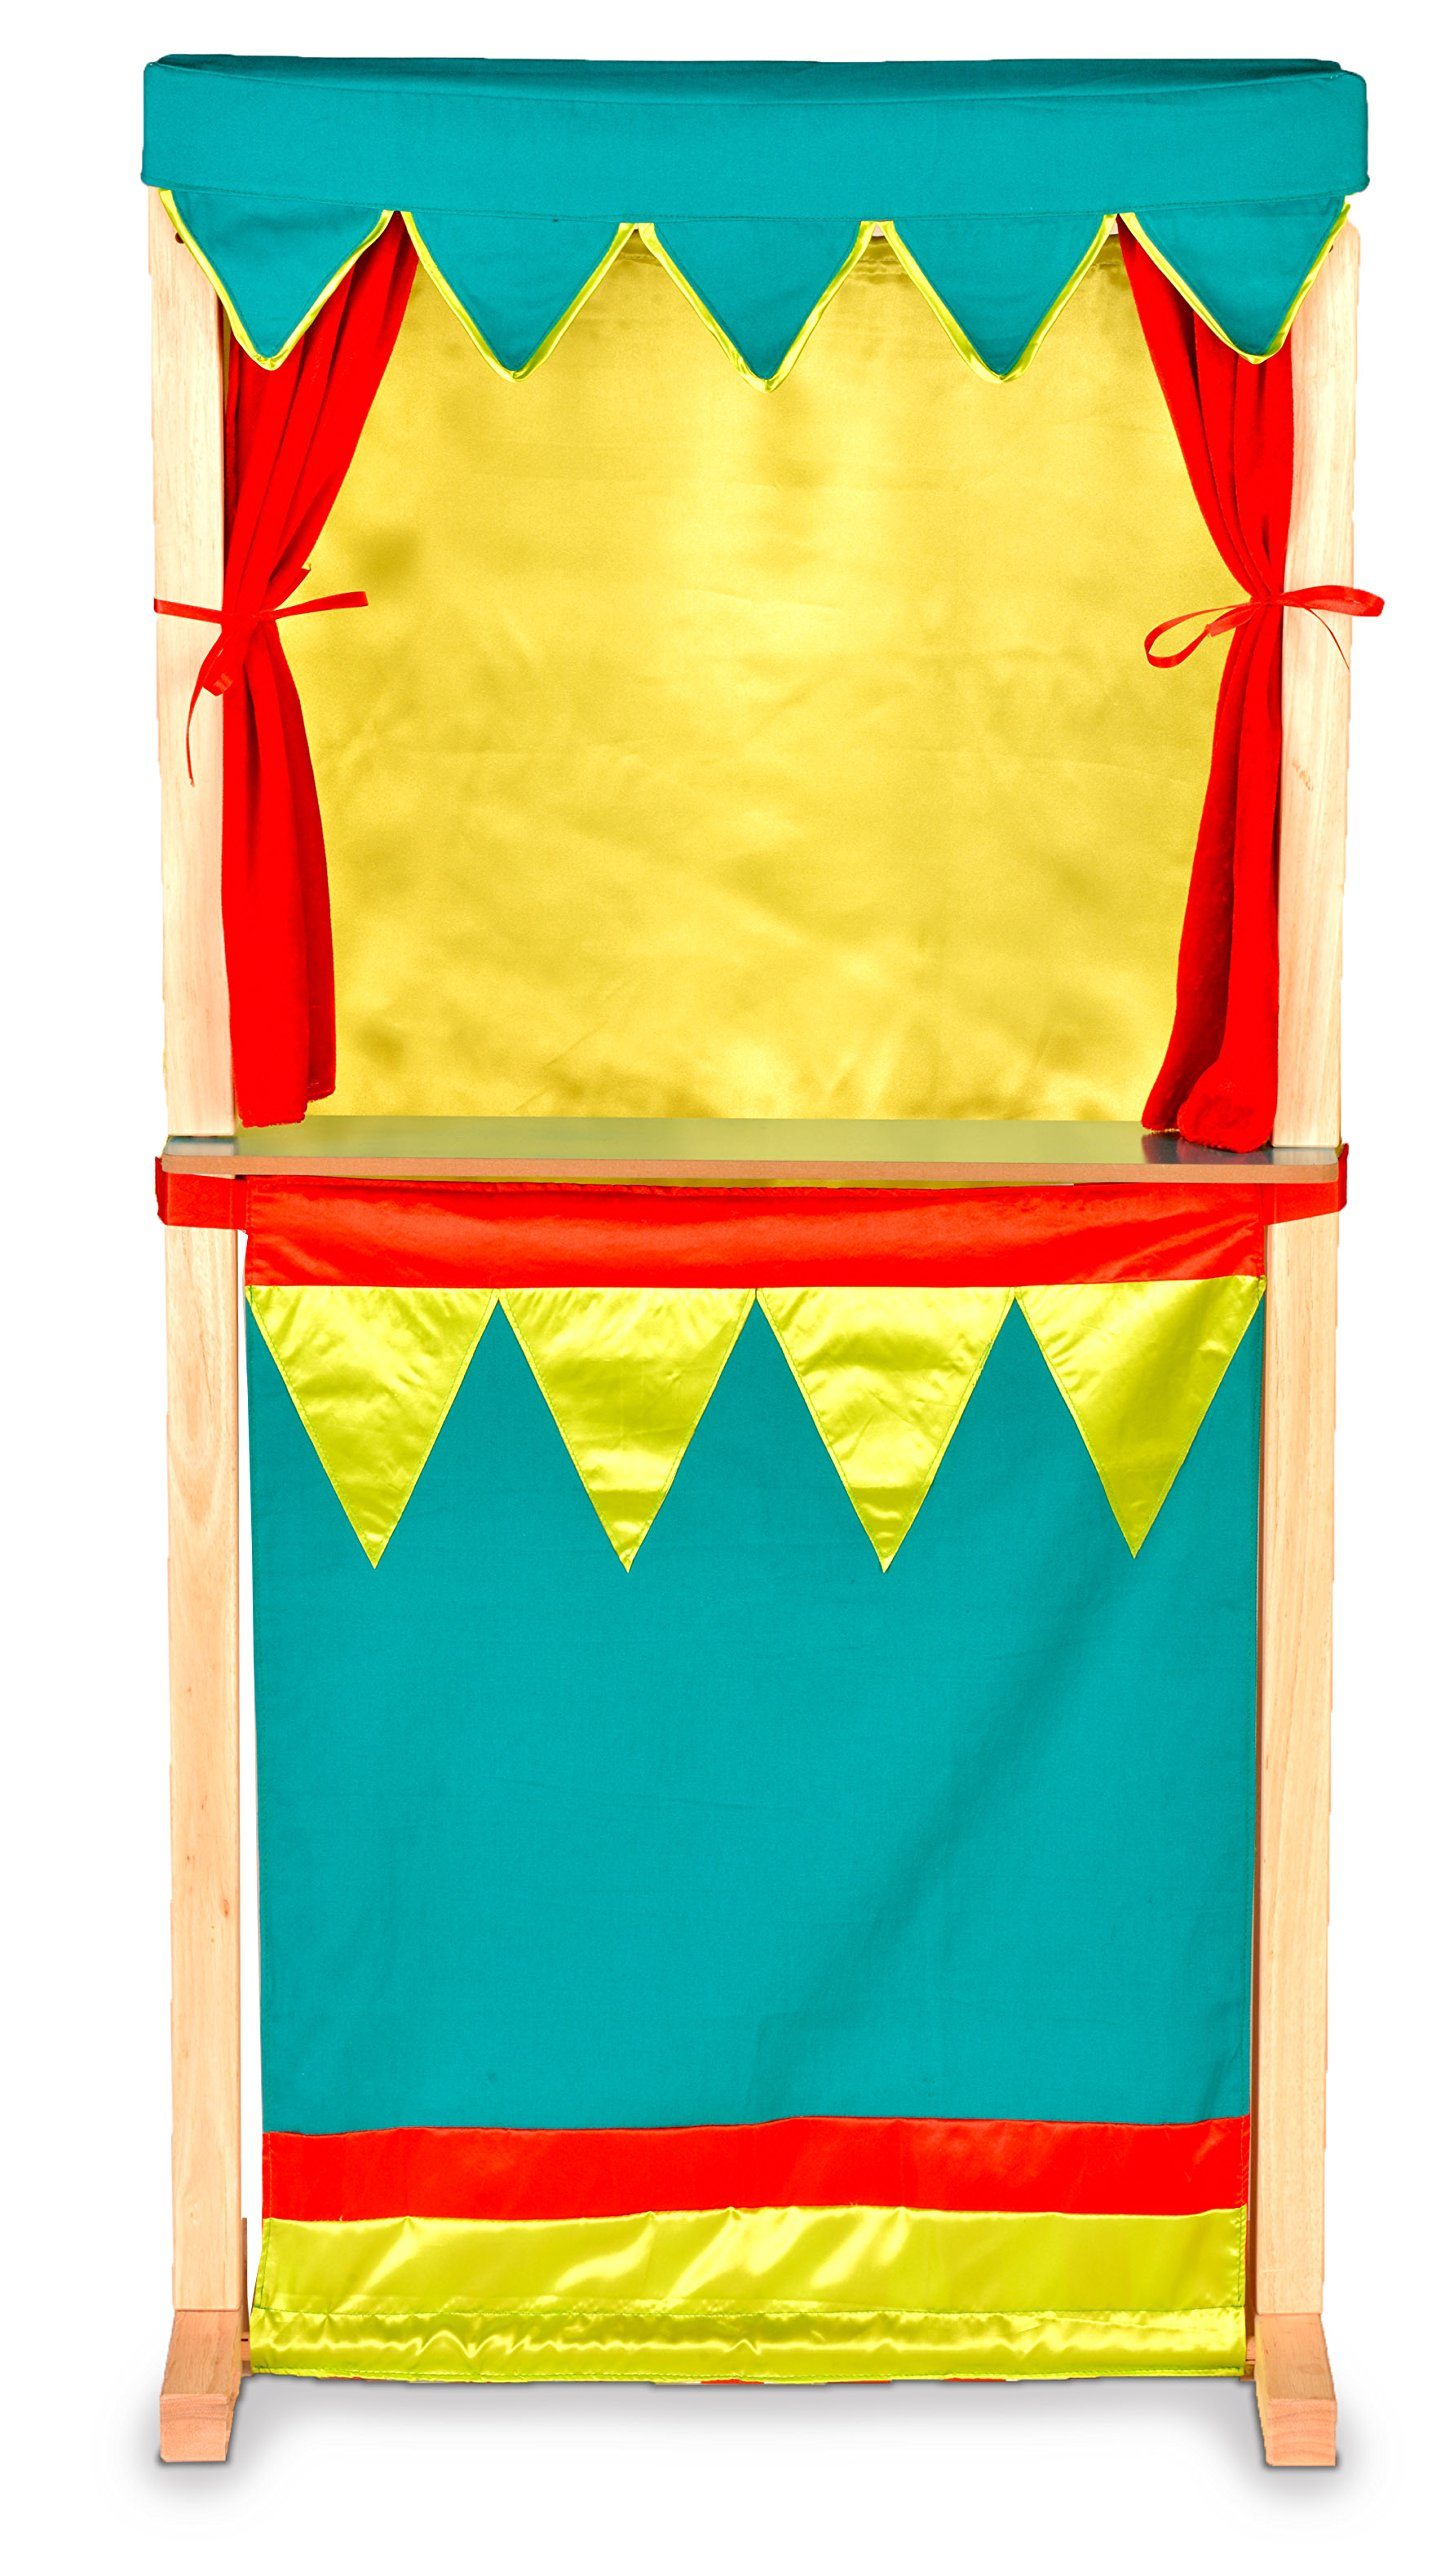 Puppet Theatre - Standing Or Table Top - Switch From Traditional Theatre Show To Market Shop.